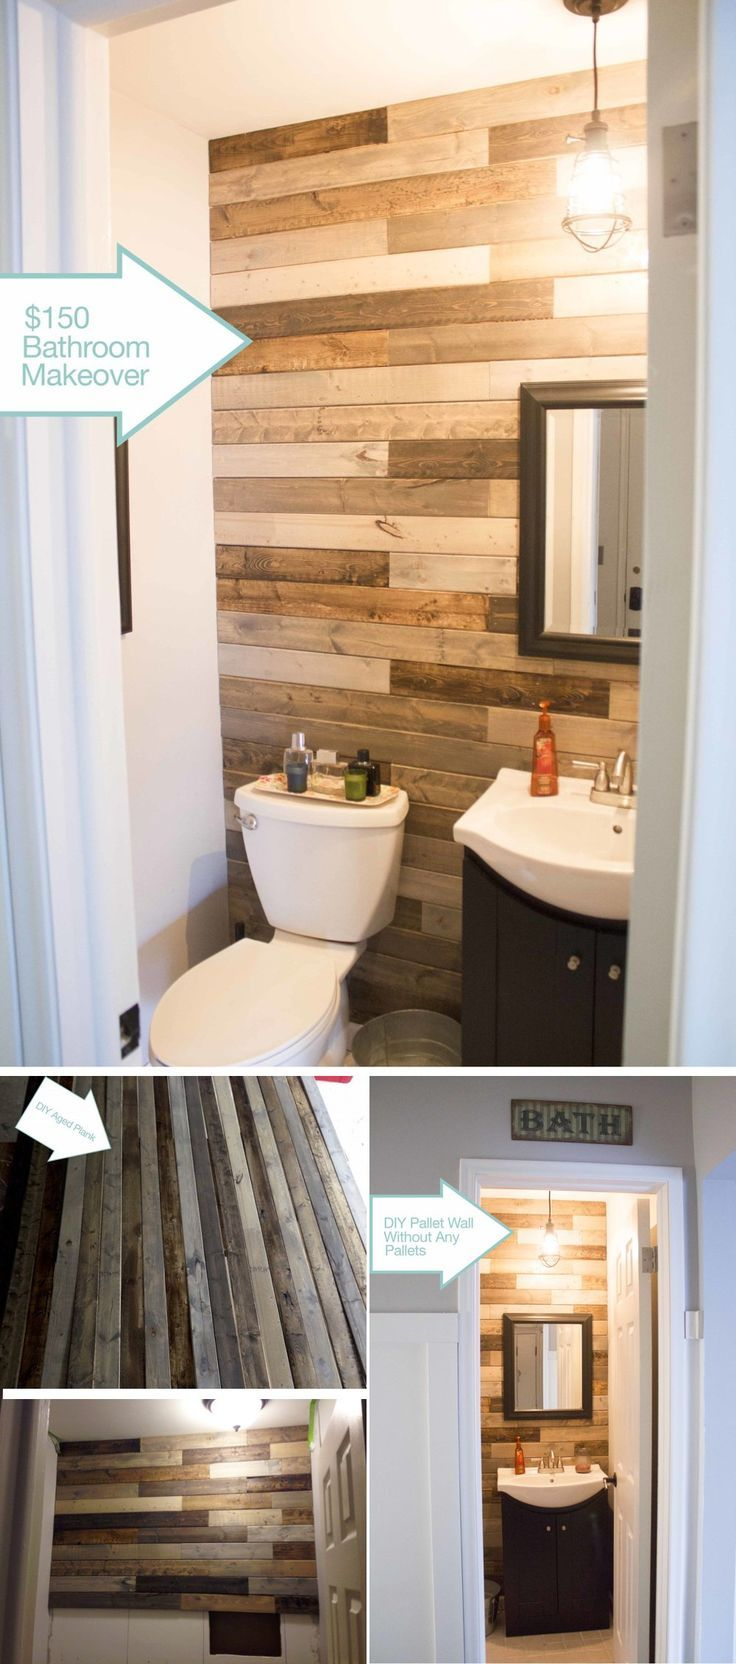 15 Beautiful Wood Accent Wall Ideas to